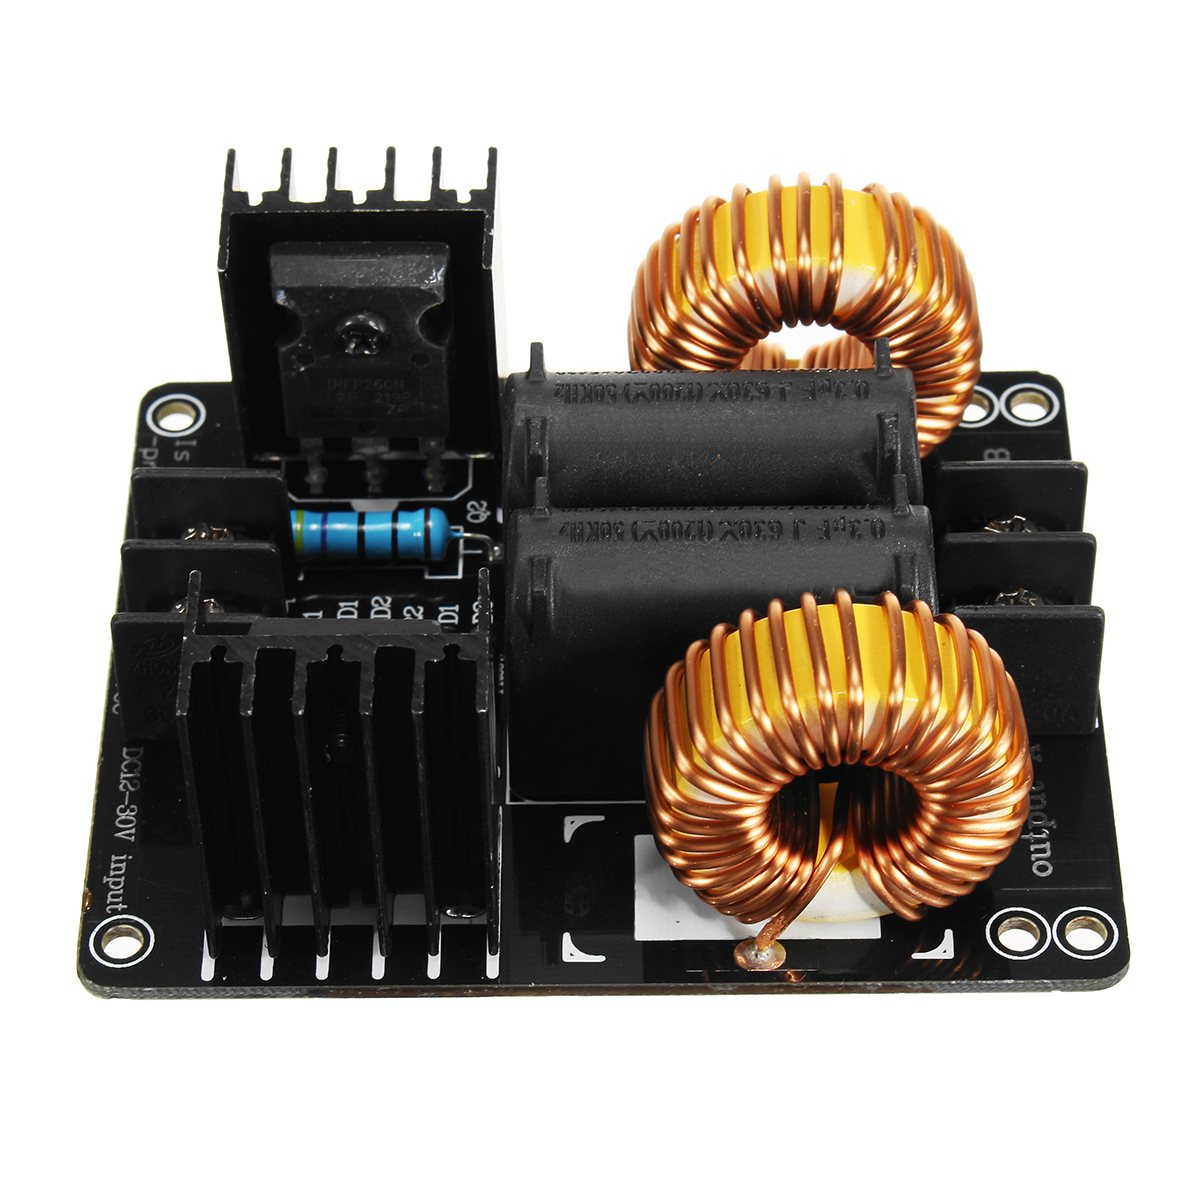 1PC 1000W 20A Low Voltage Induction Heating Coil Module Flyback Driver Heater Integrated Circuits1PC 1000W 20A Low Voltage Induction Heating Coil Module Flyback Driver Heater Integrated Circuits